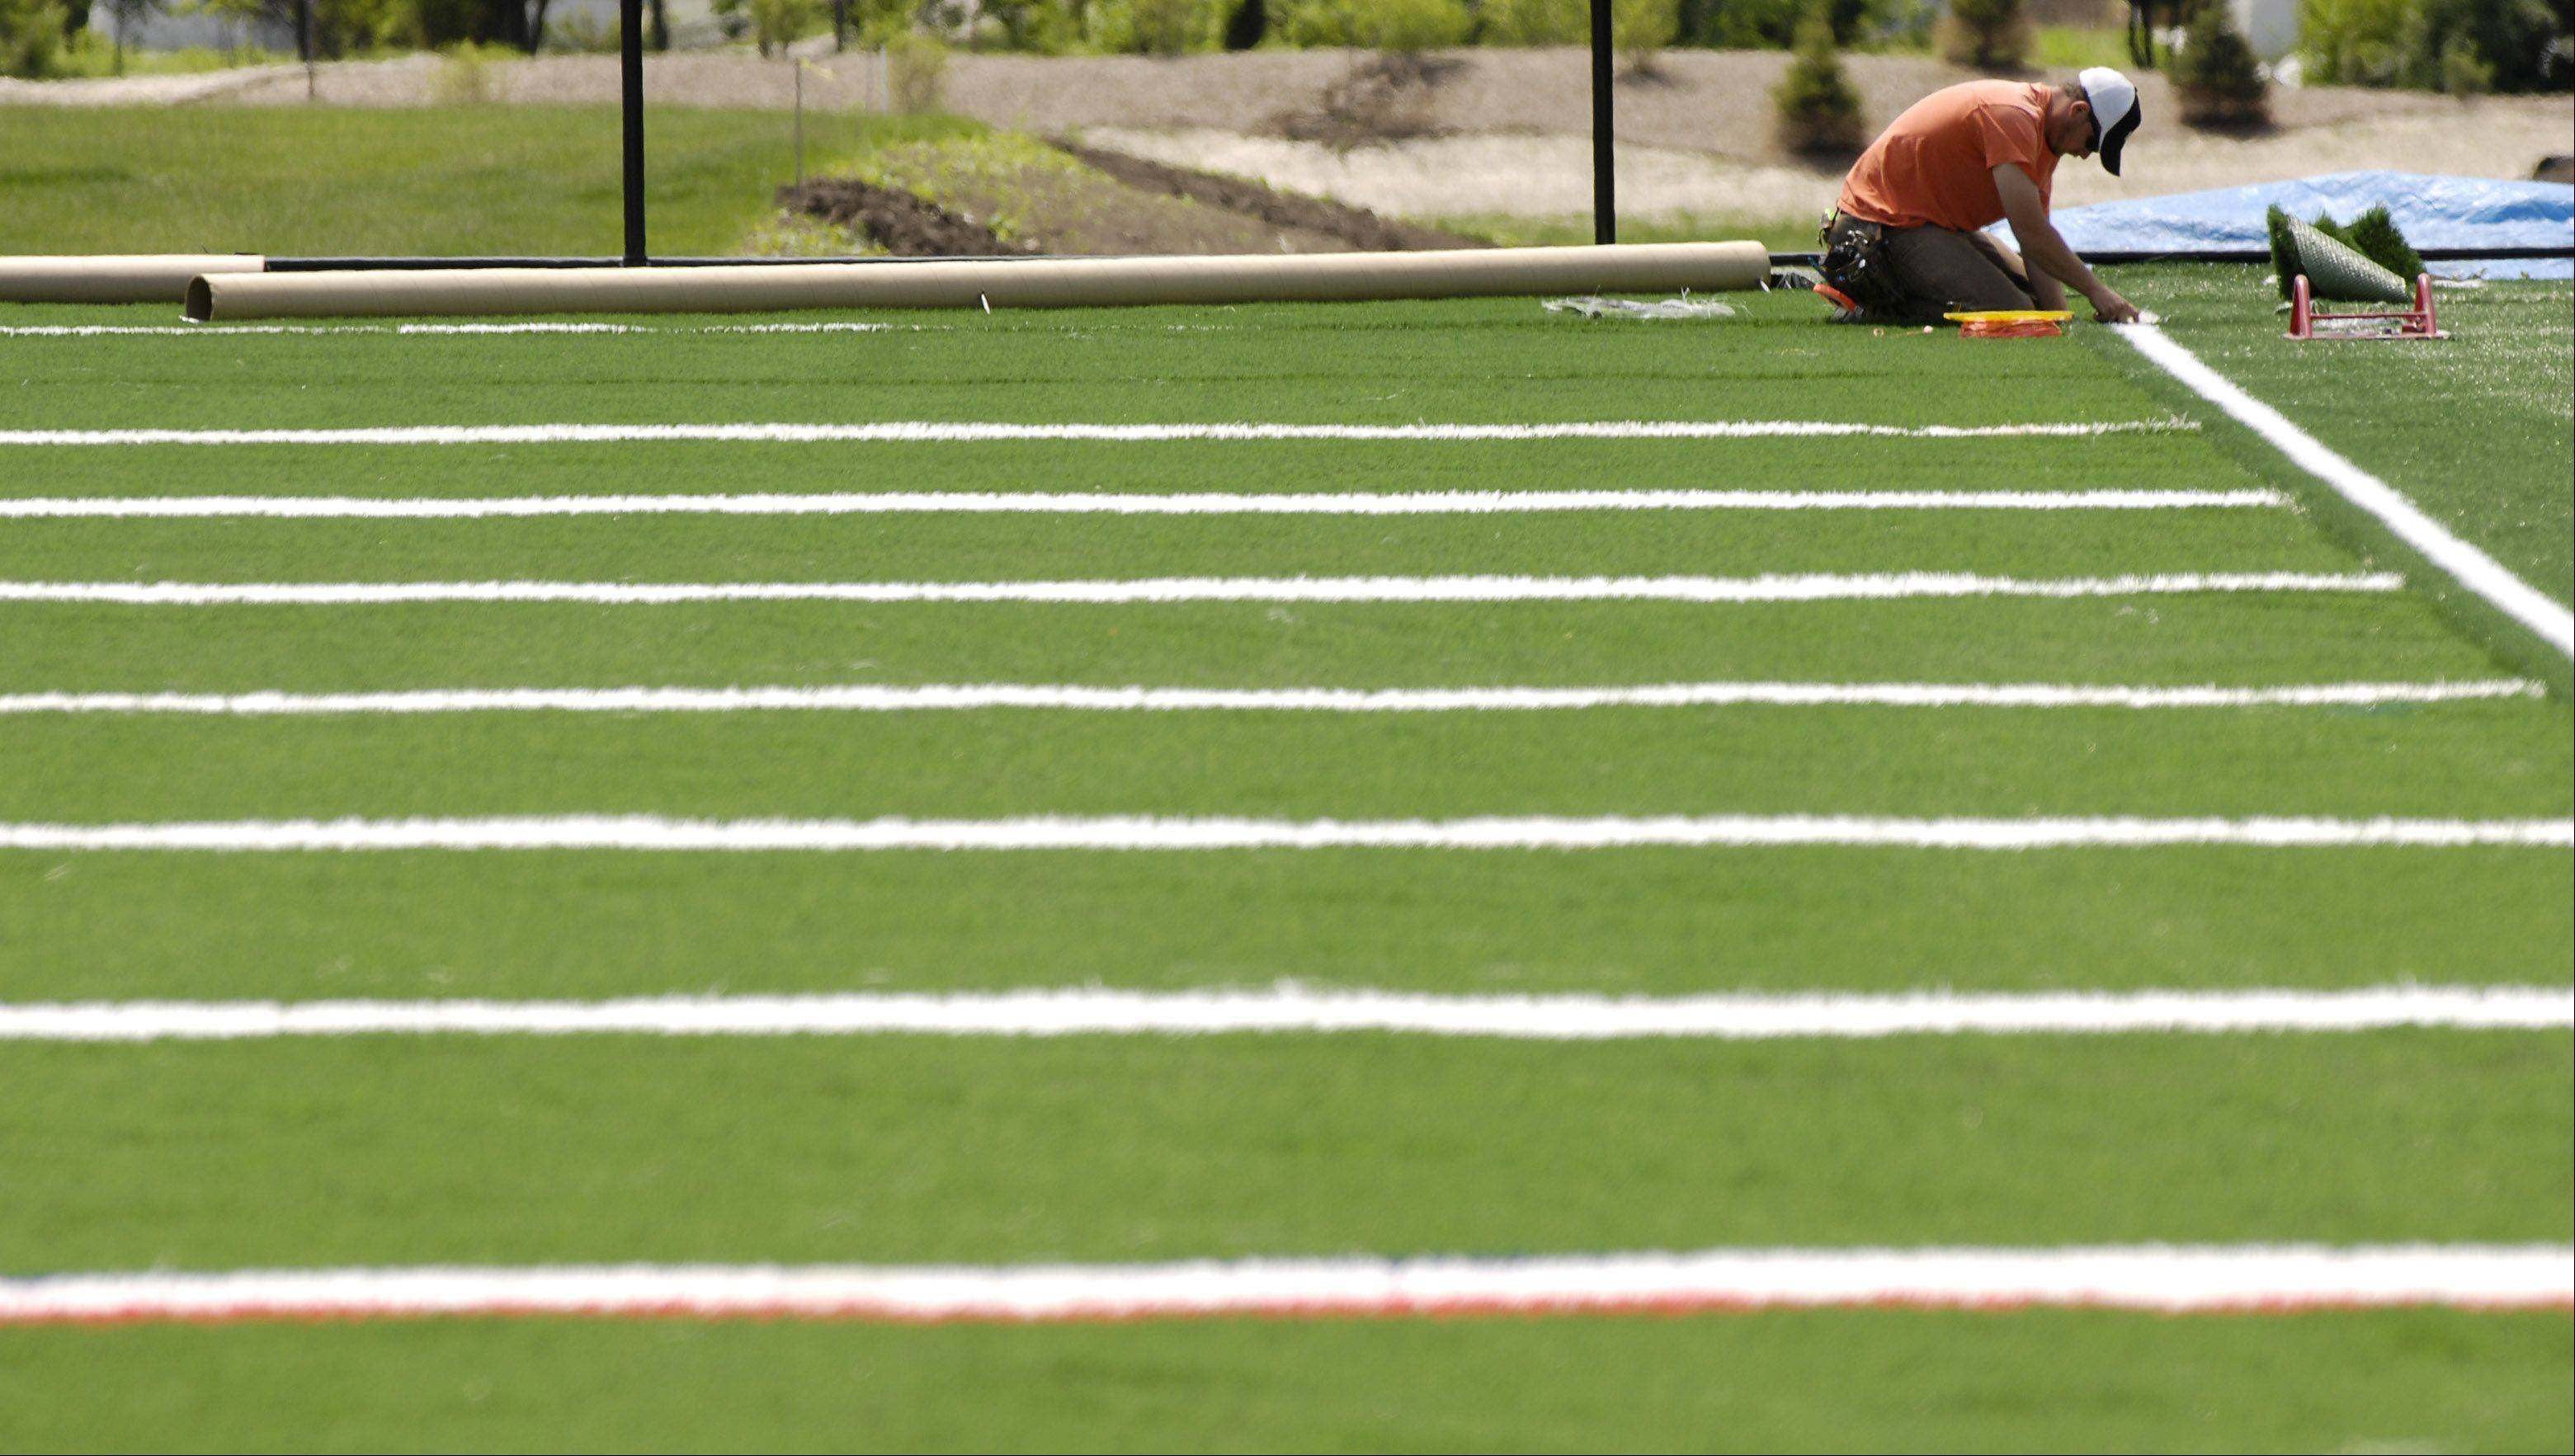 More suburban schools turning to artificial turf